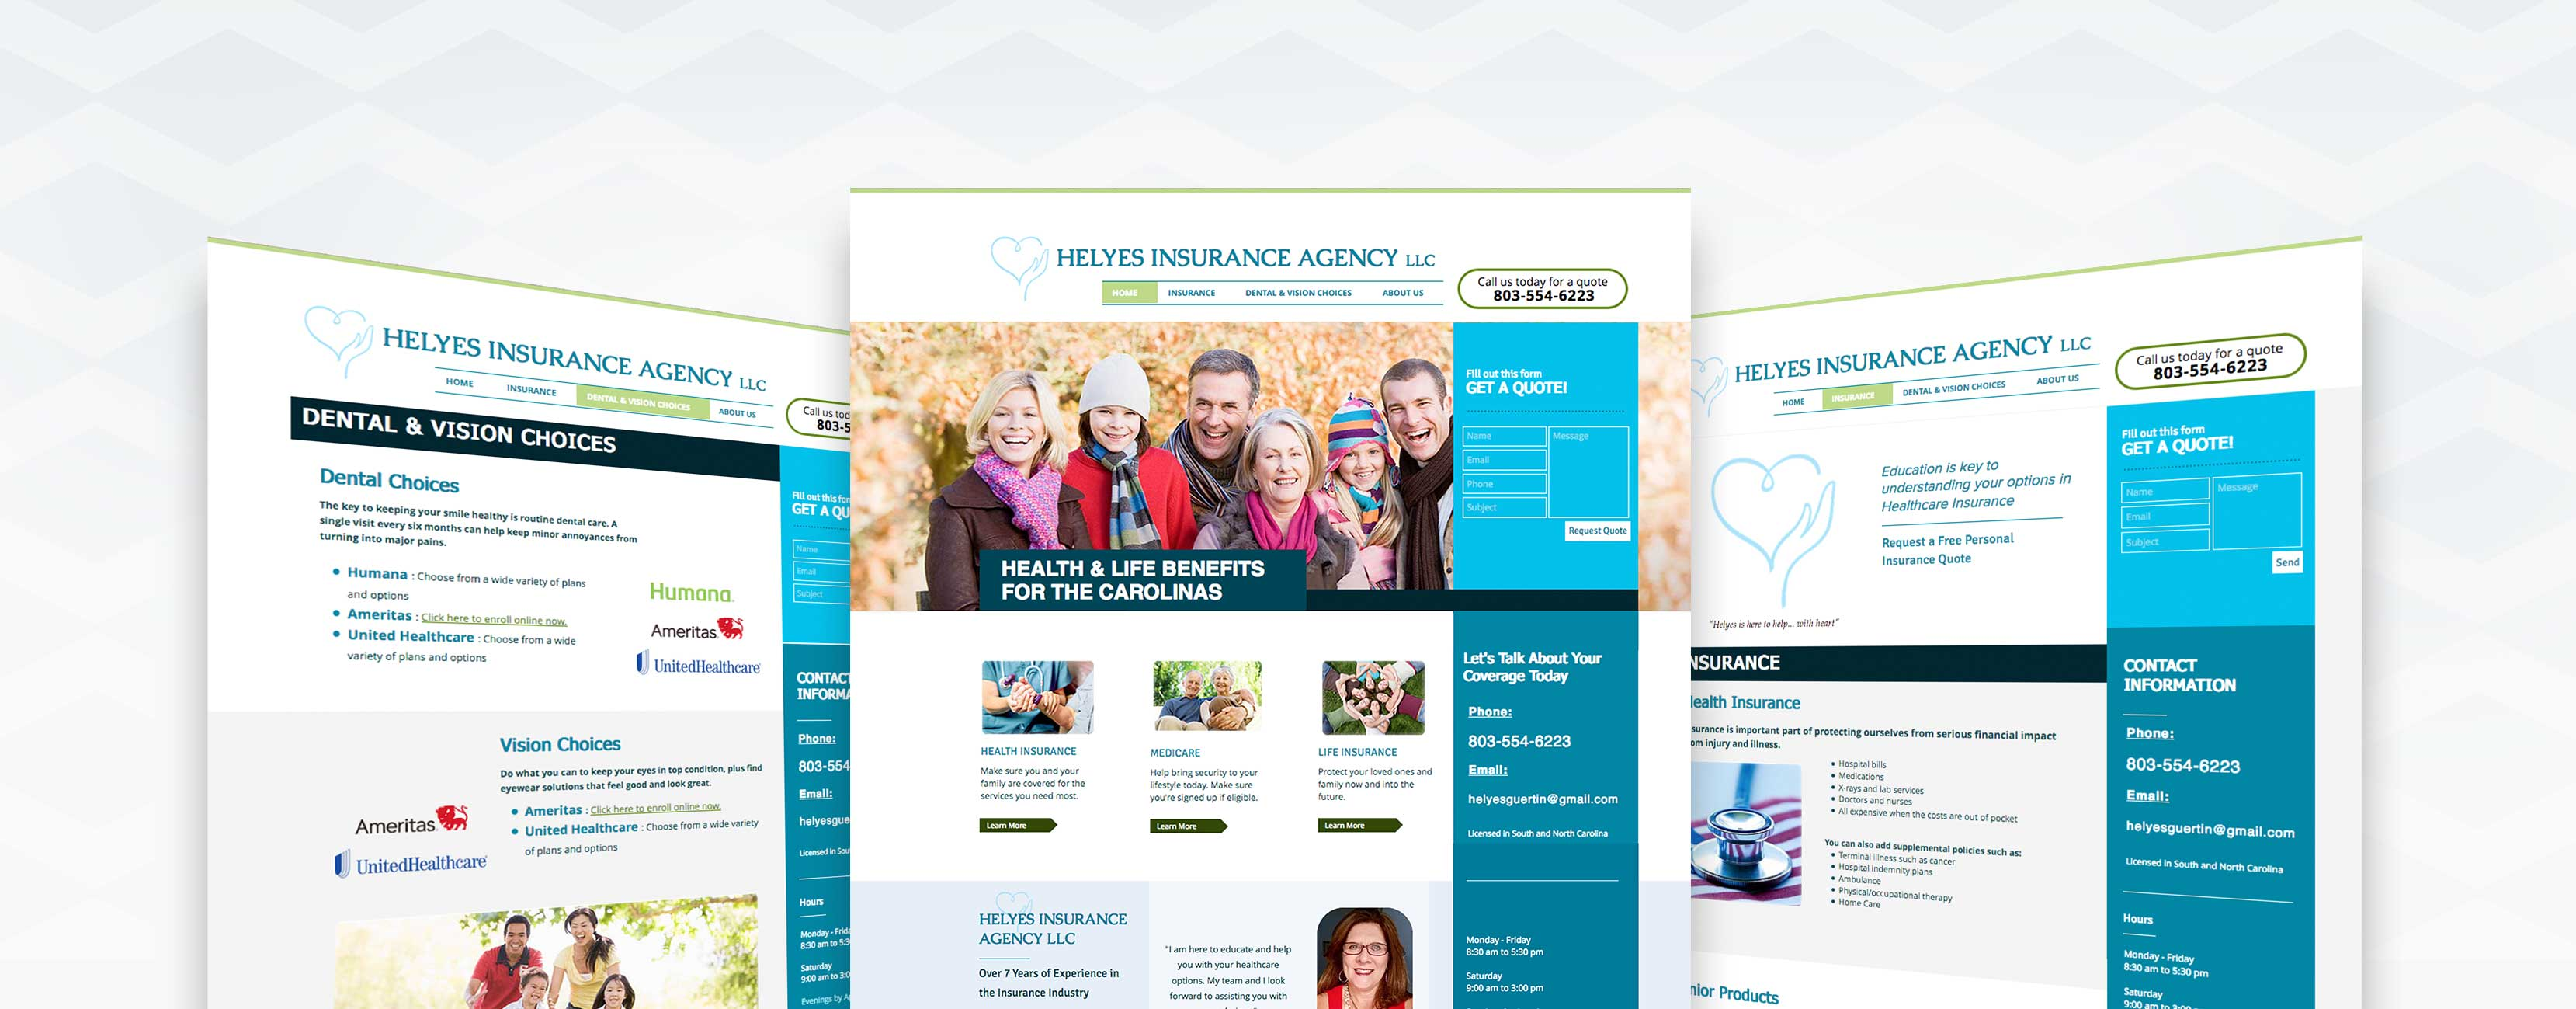 Helyes Insurance Agency Website